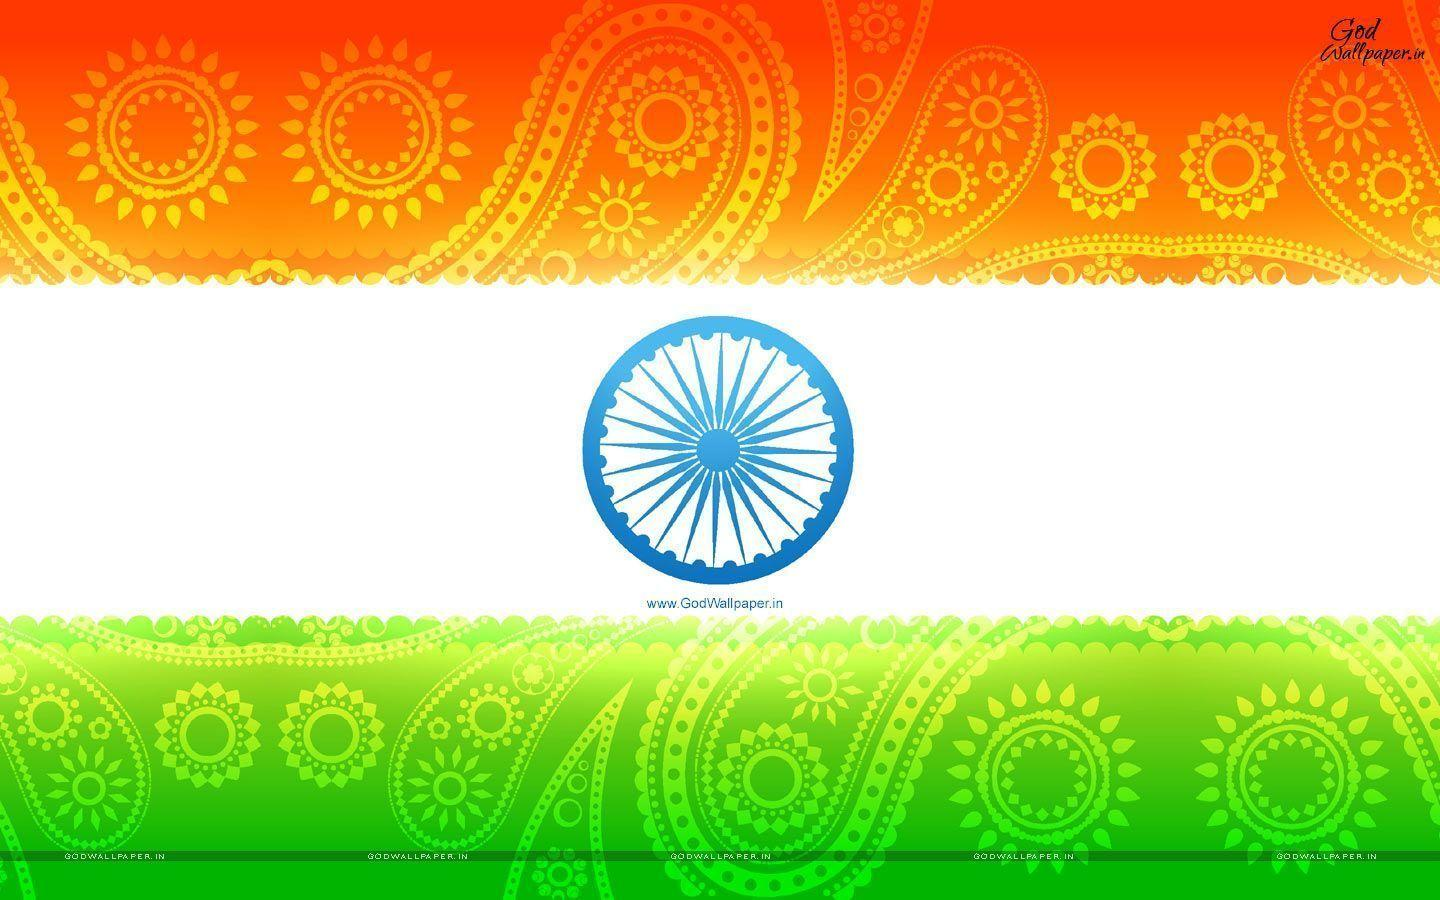 Indian Flag Wallpapers 2015 - Wallpaper Cave